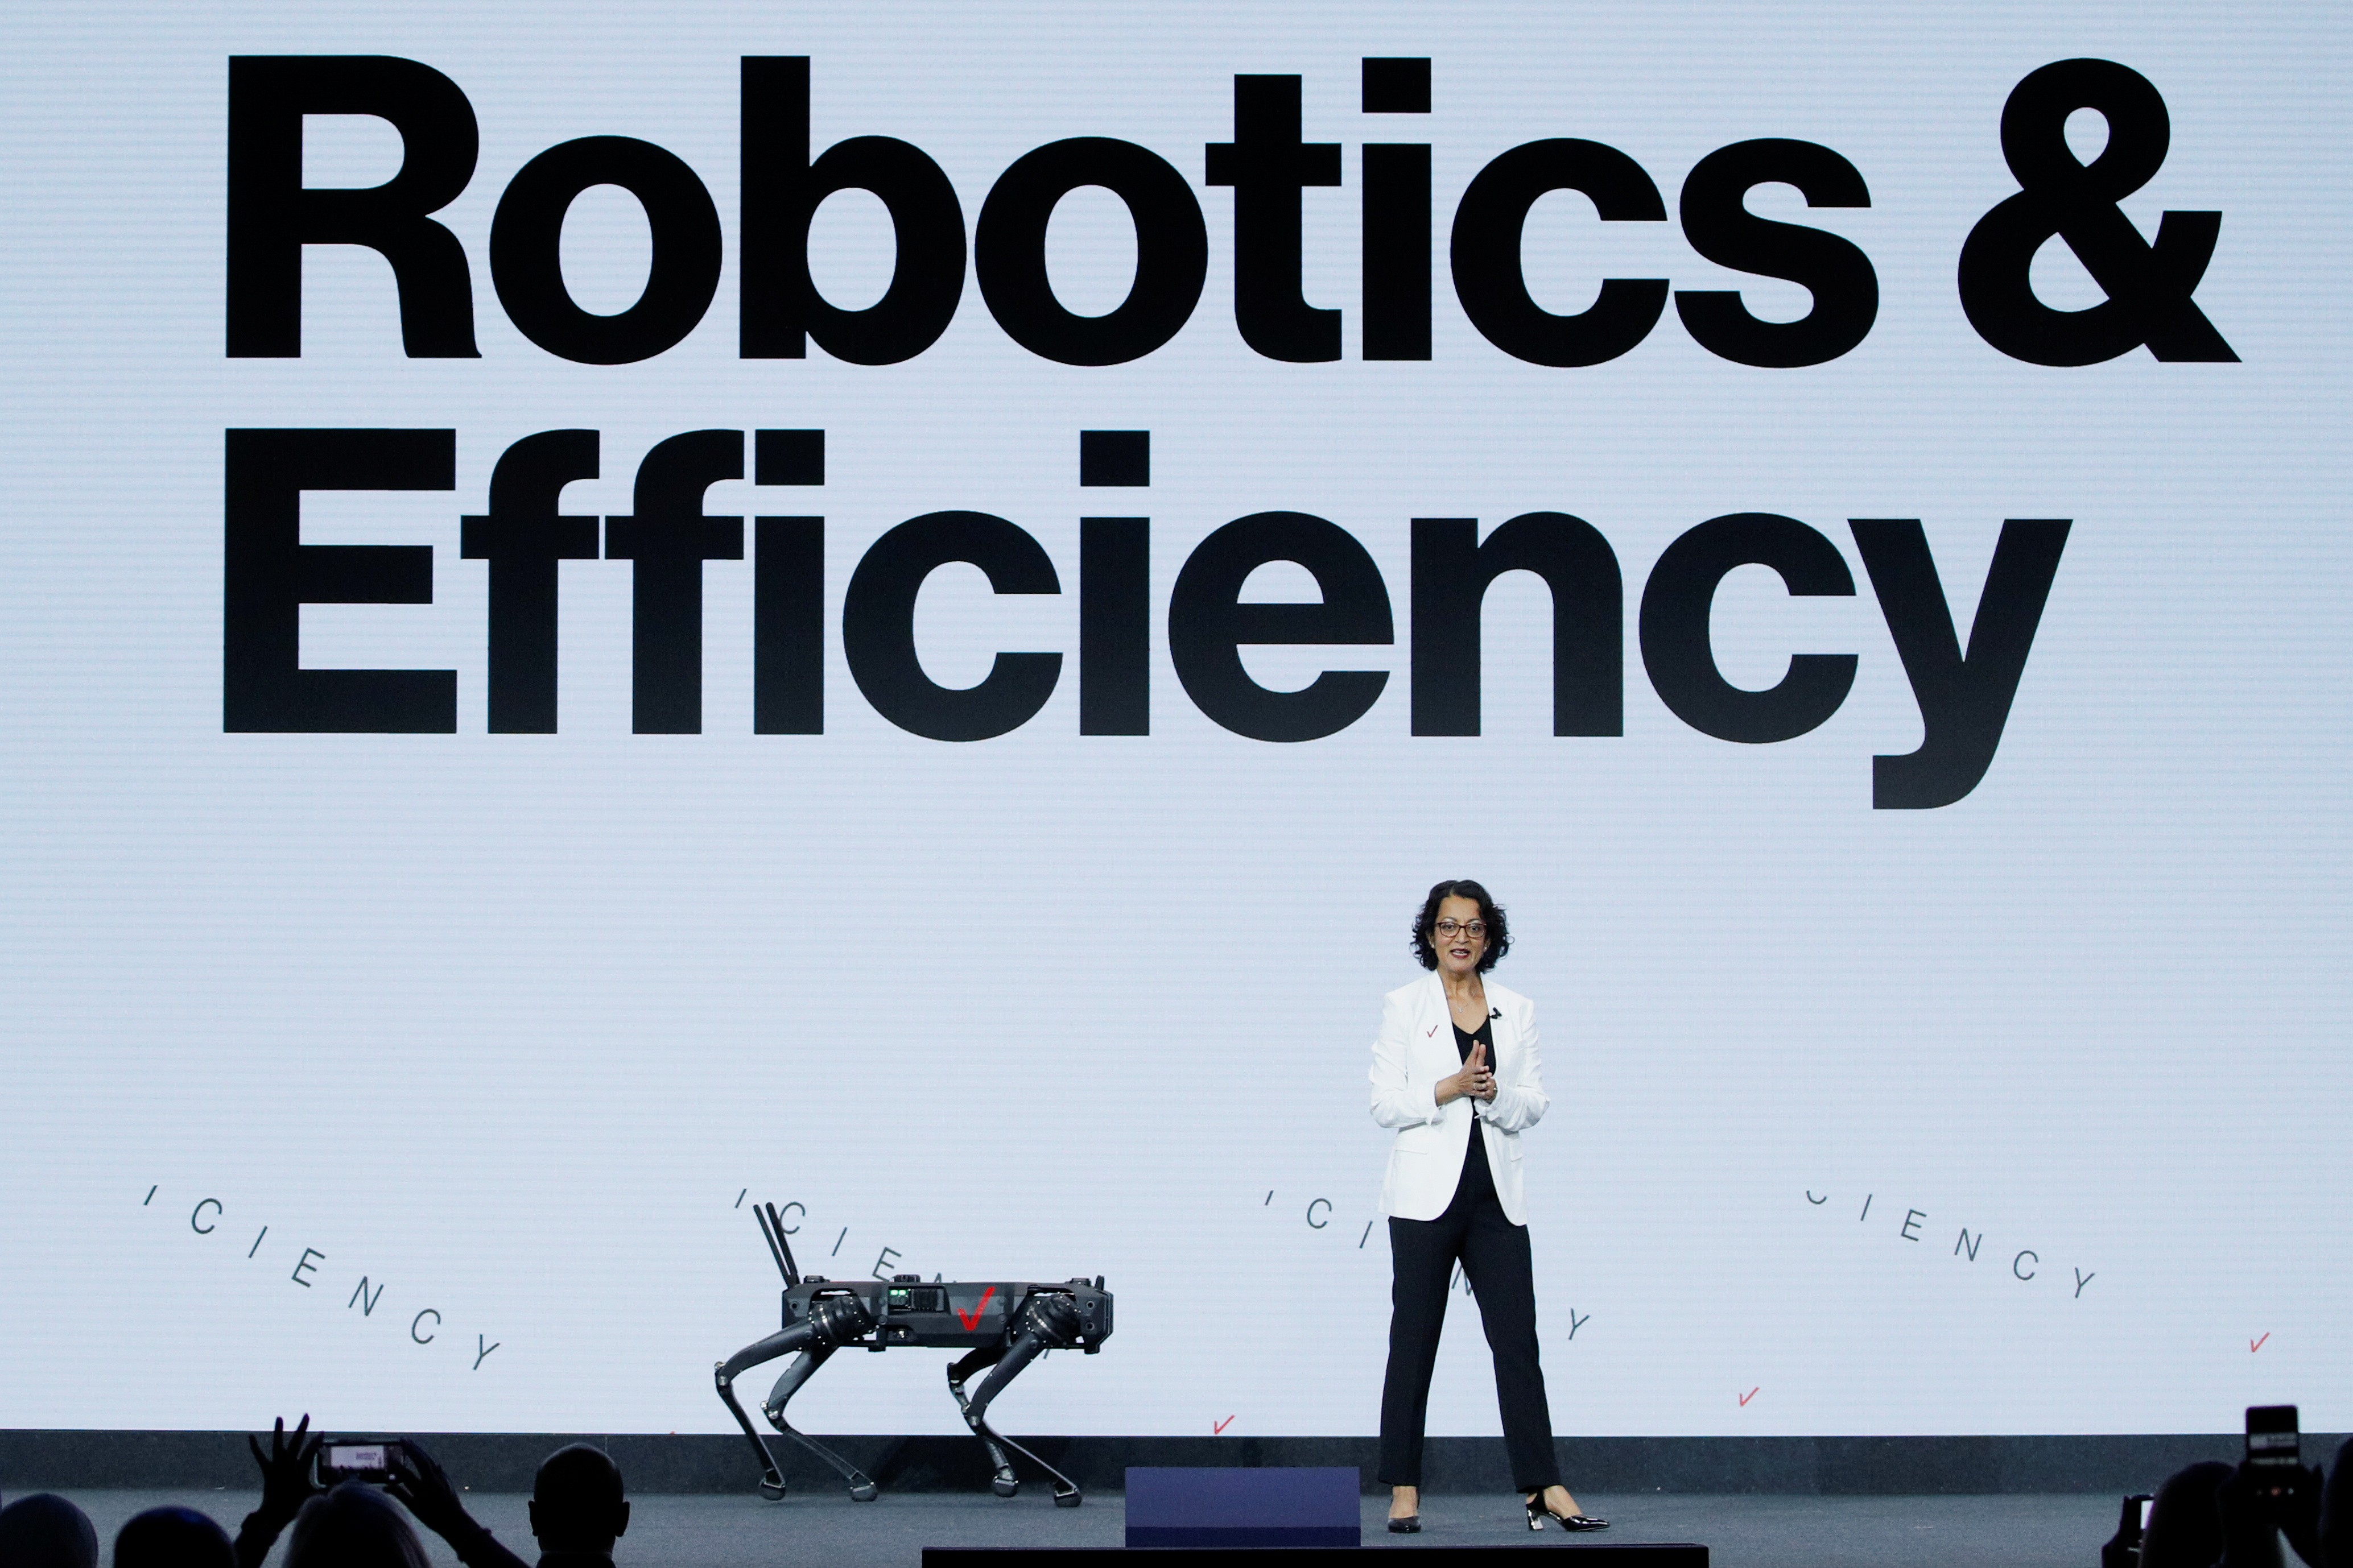 Rima Qureshi, EVP Chief Strategy Officer of Verizon, stands next to a robot, as she gives a speech during the Mobile World Congress (MWC) in Barcelona, Spain, June 28, 2021. REUTERS/Albert Gea